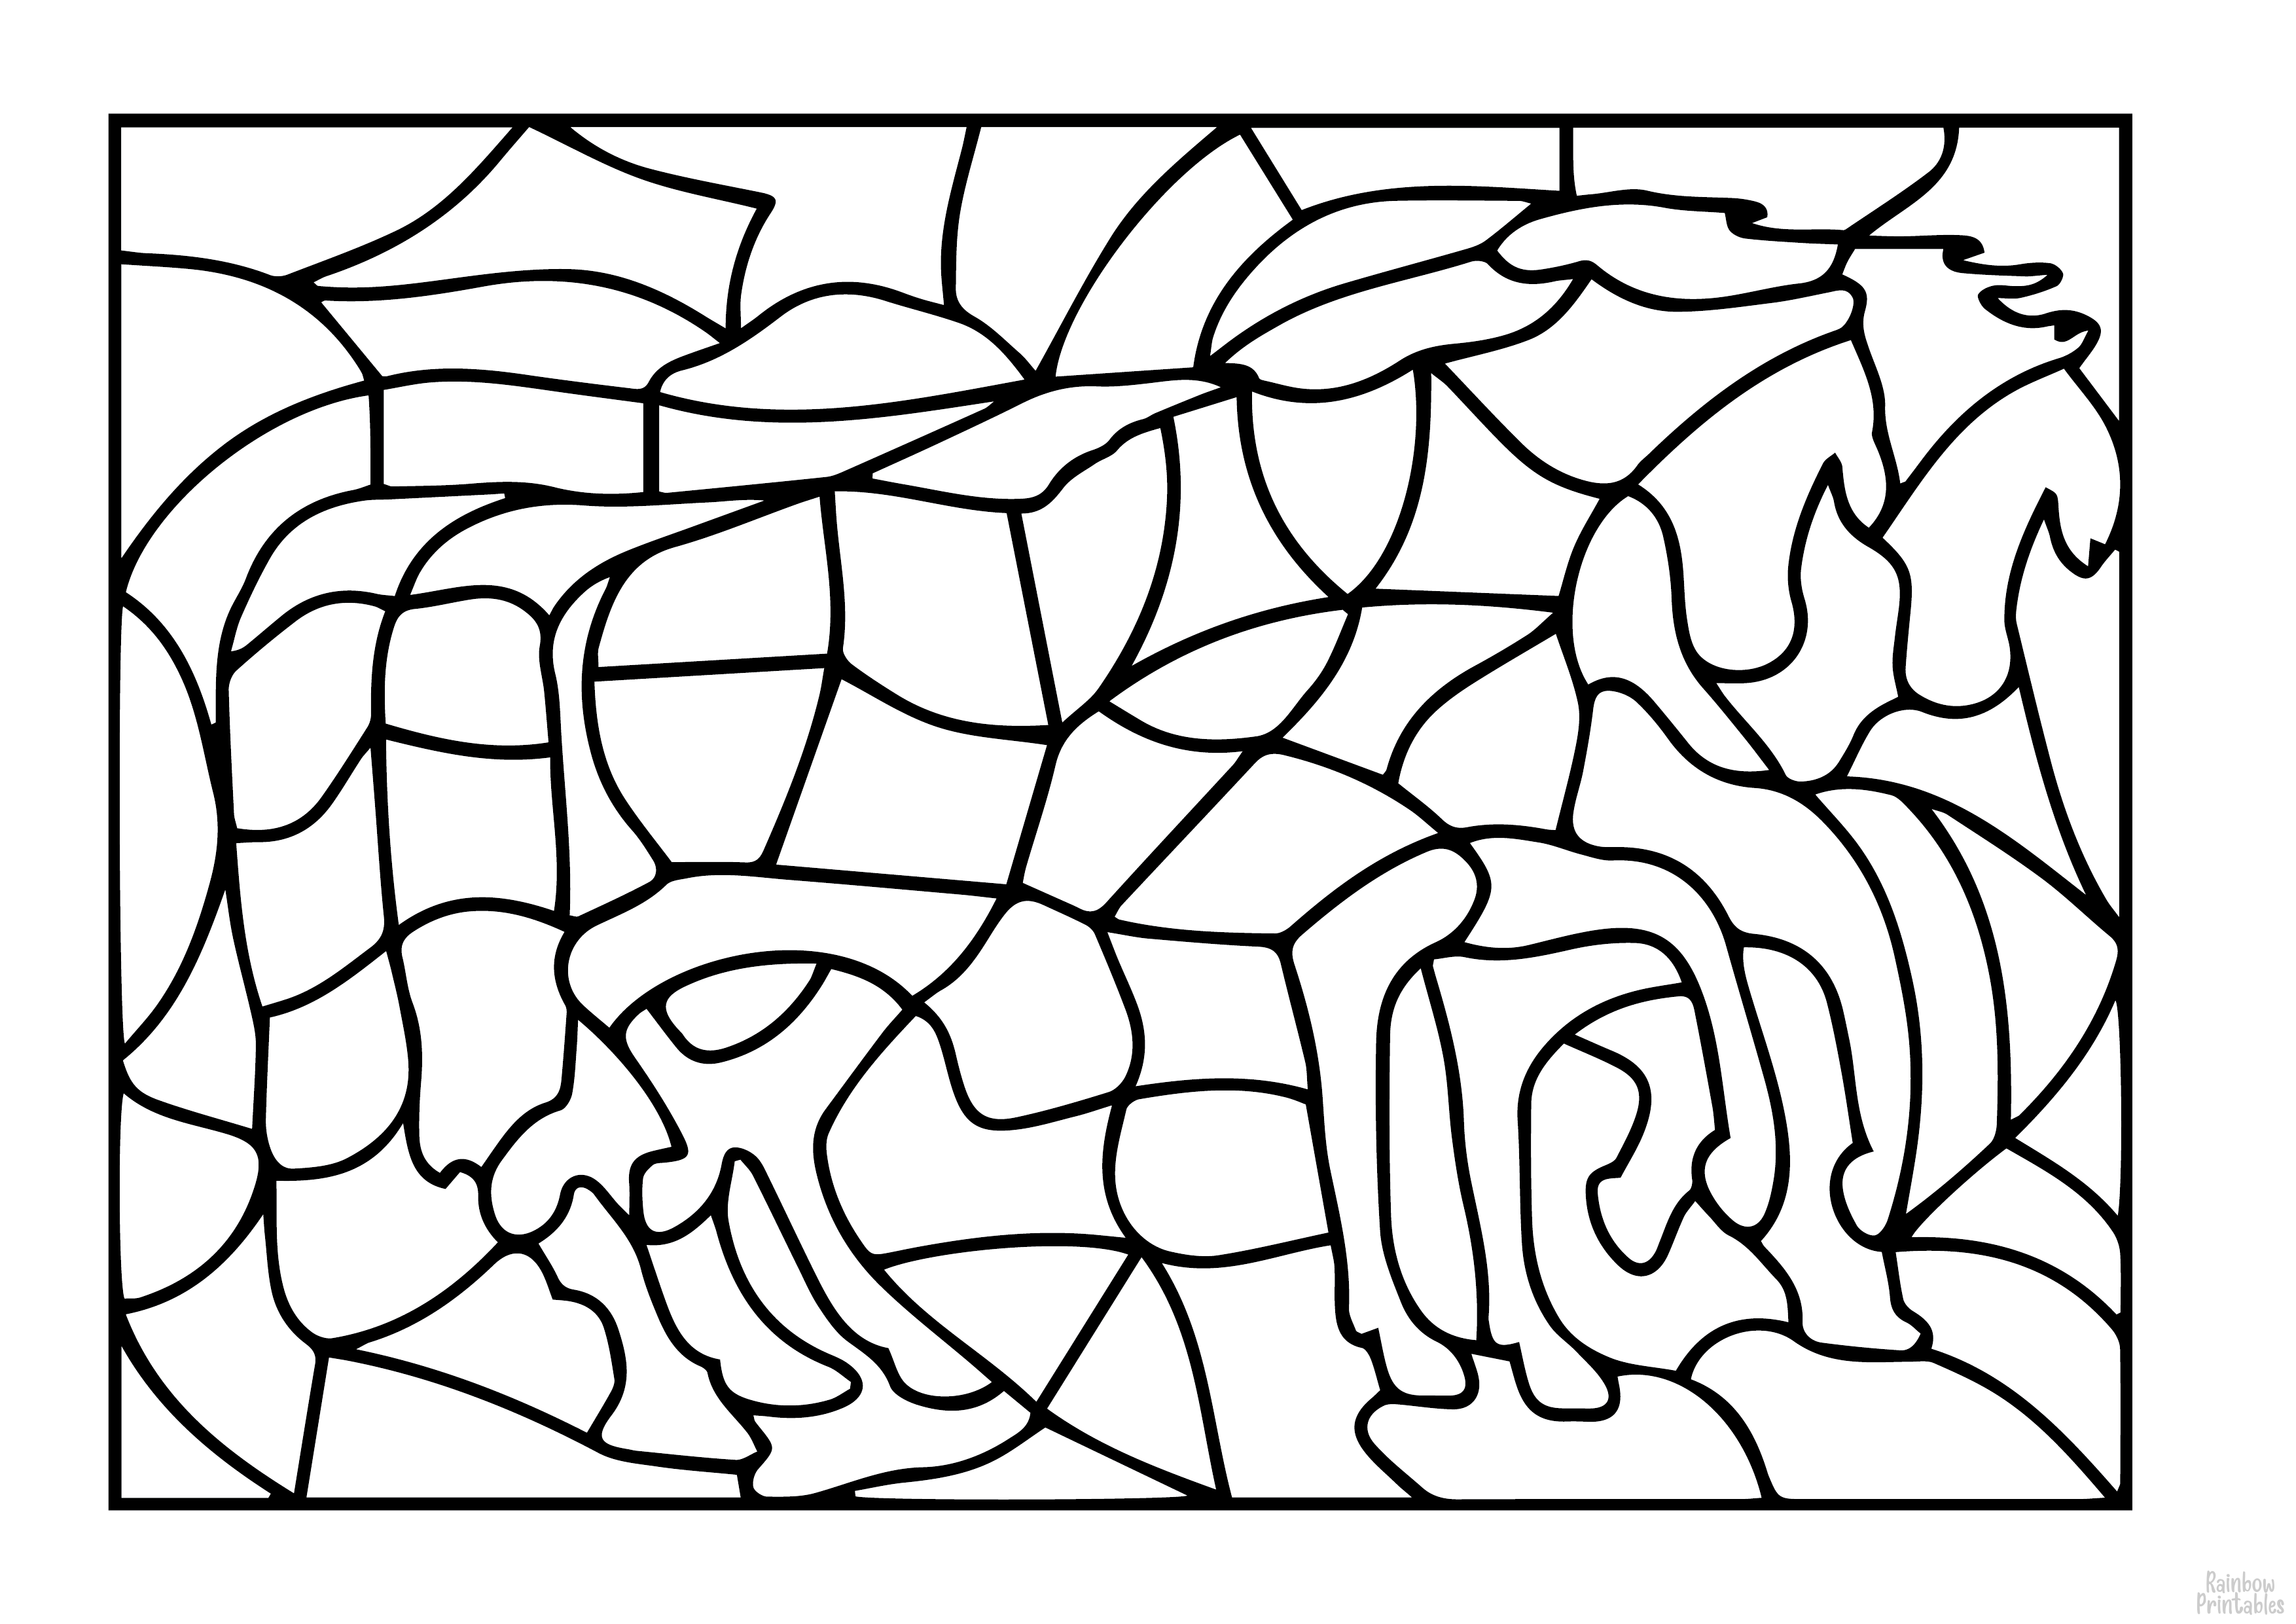 FREE HORSE PONY PUZZLE DIY GAME Free Clipart Coloring Pages for Kids Adults Art Activities Line Art-03